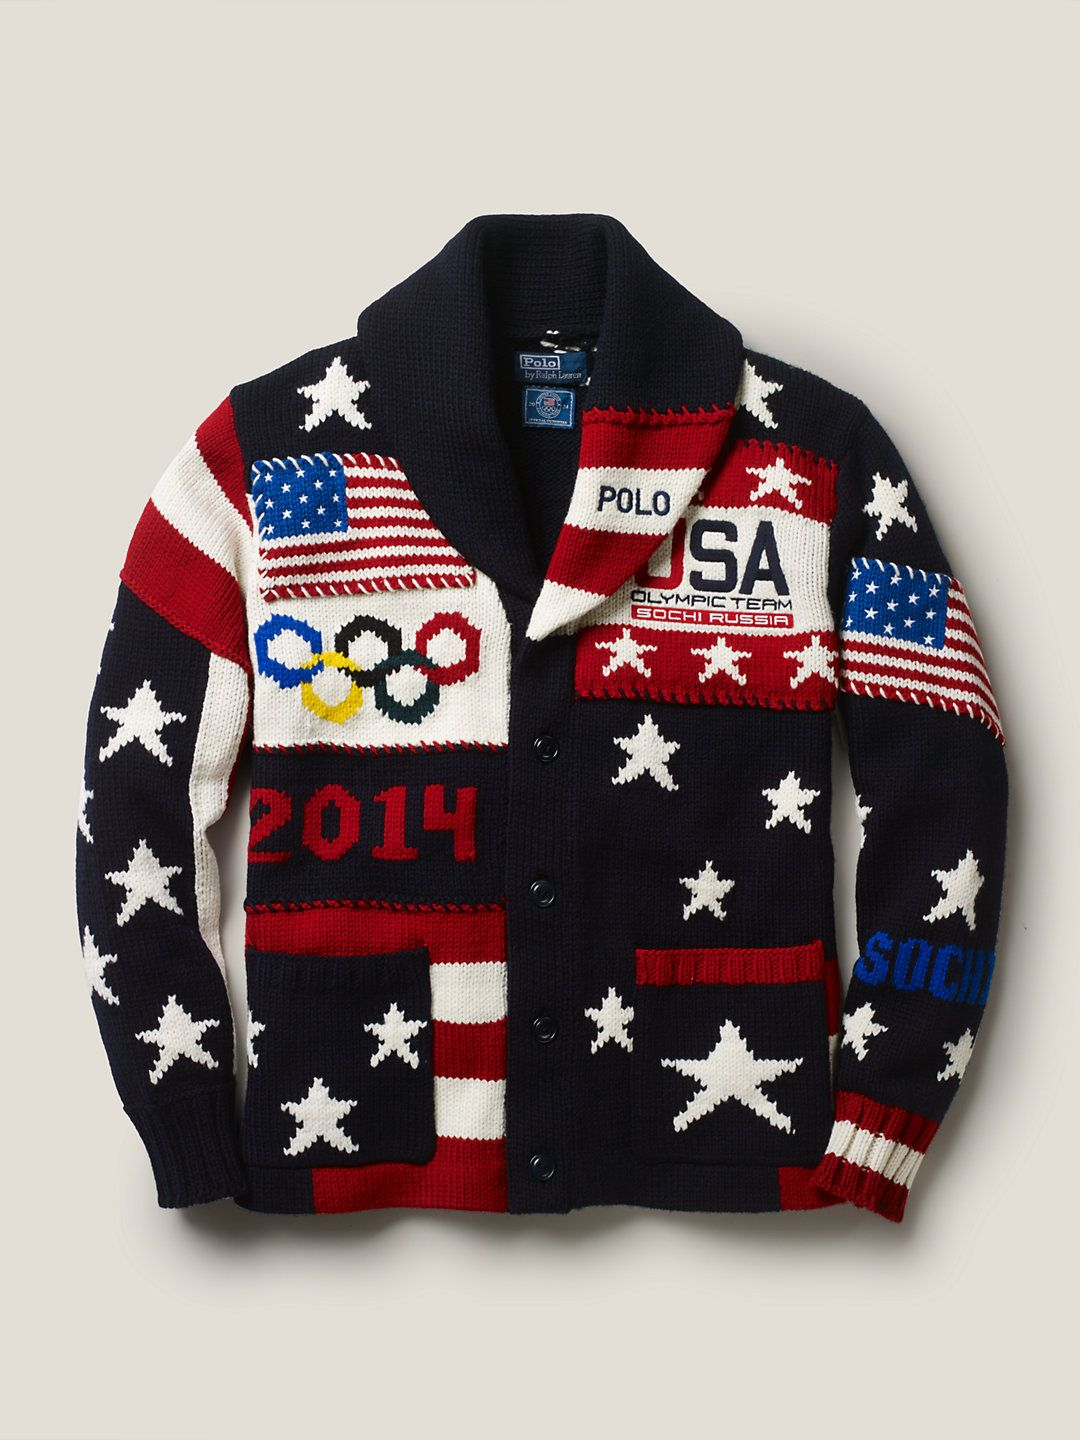 157c37fcca7 Team USA Opening Ceremony Cardigan. Team USA Opening Ceremony Cardigan Usa  Olympics